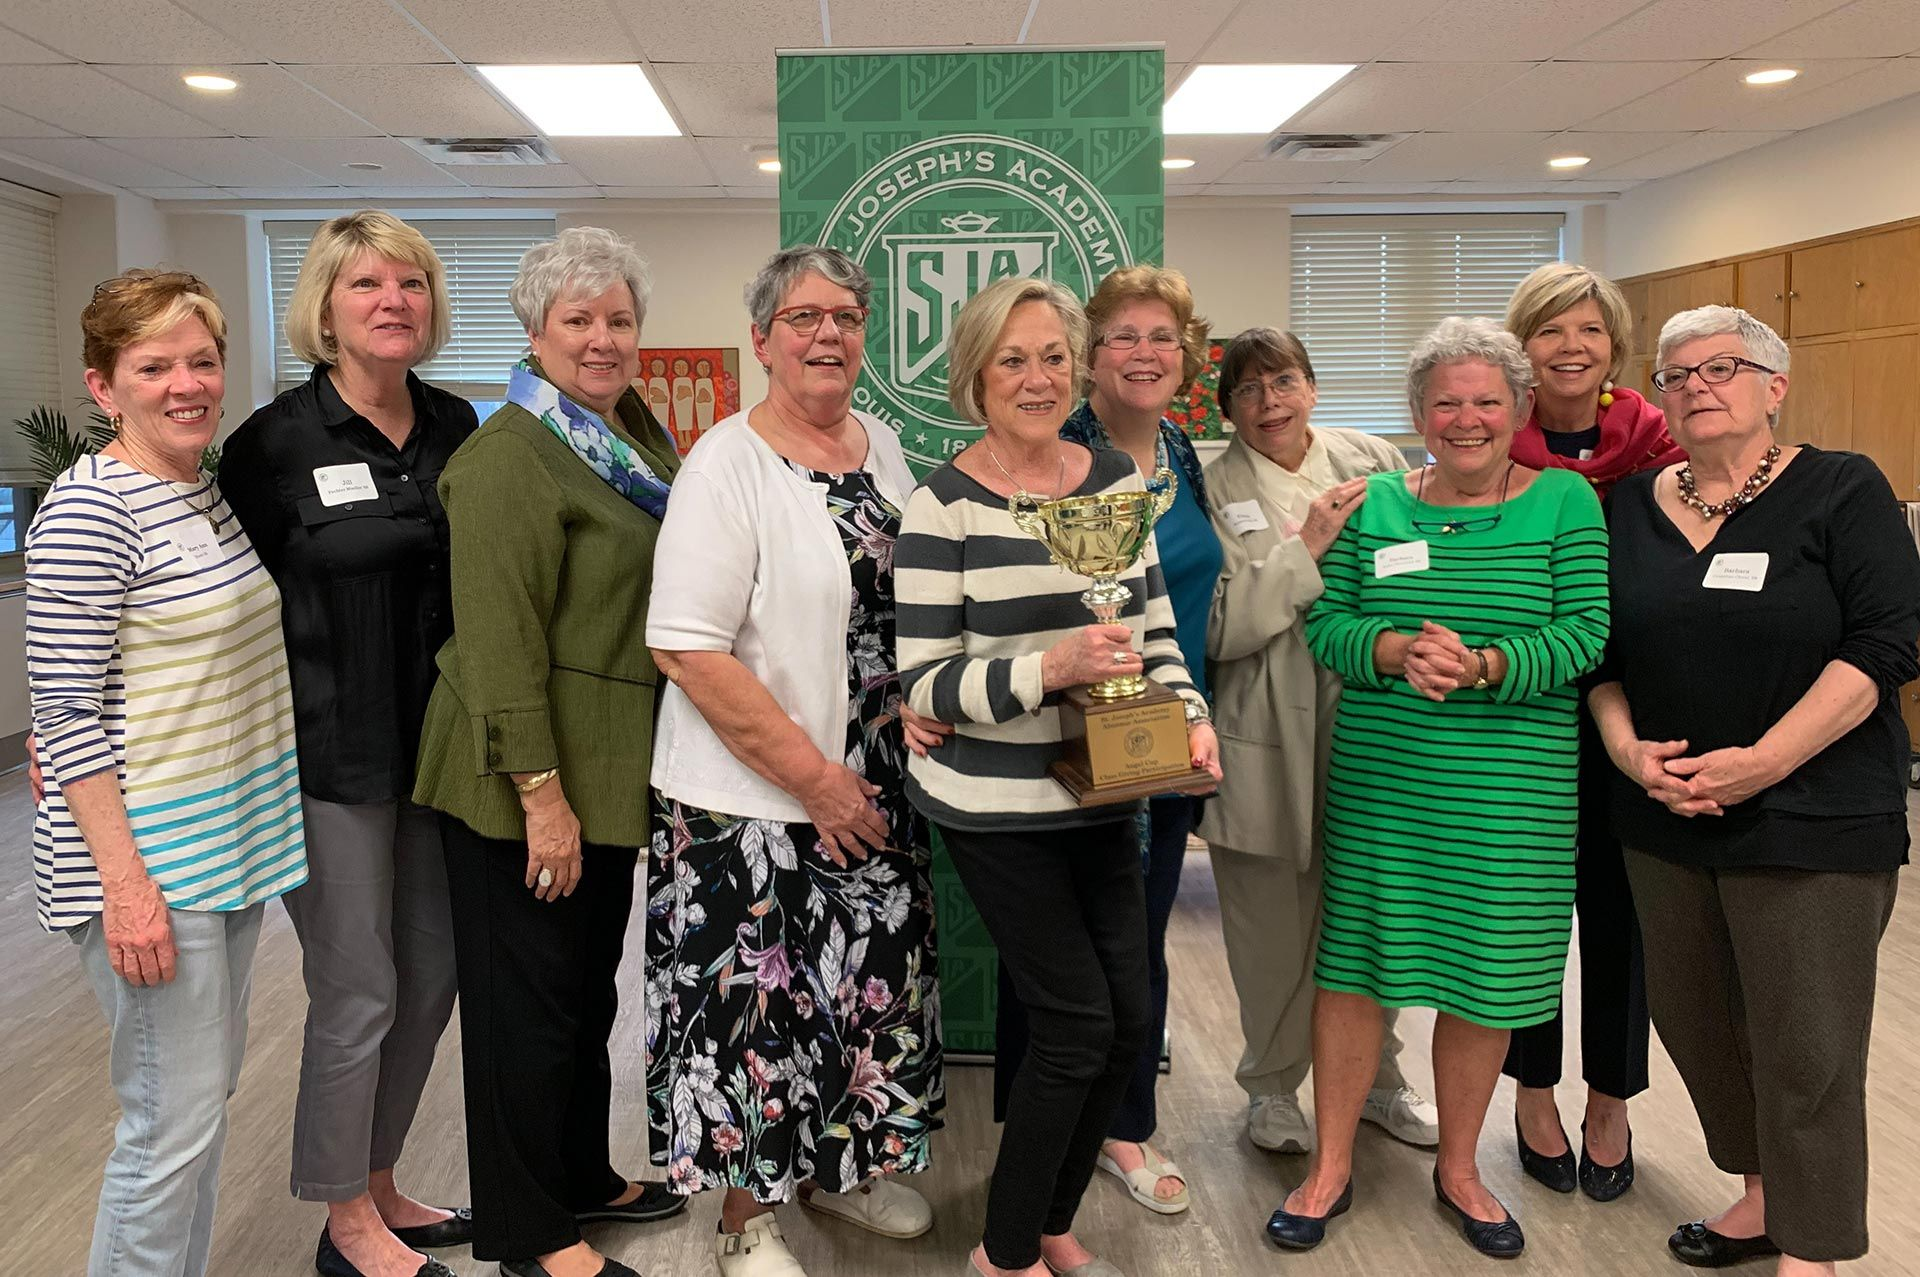 Congratulations to the Class of 1968 who were the winners of last year's Angel Cup Reunion Giving Challenge. Their class reached the highest level of giving participation out of all 2018 reunion classes with 61% participation!